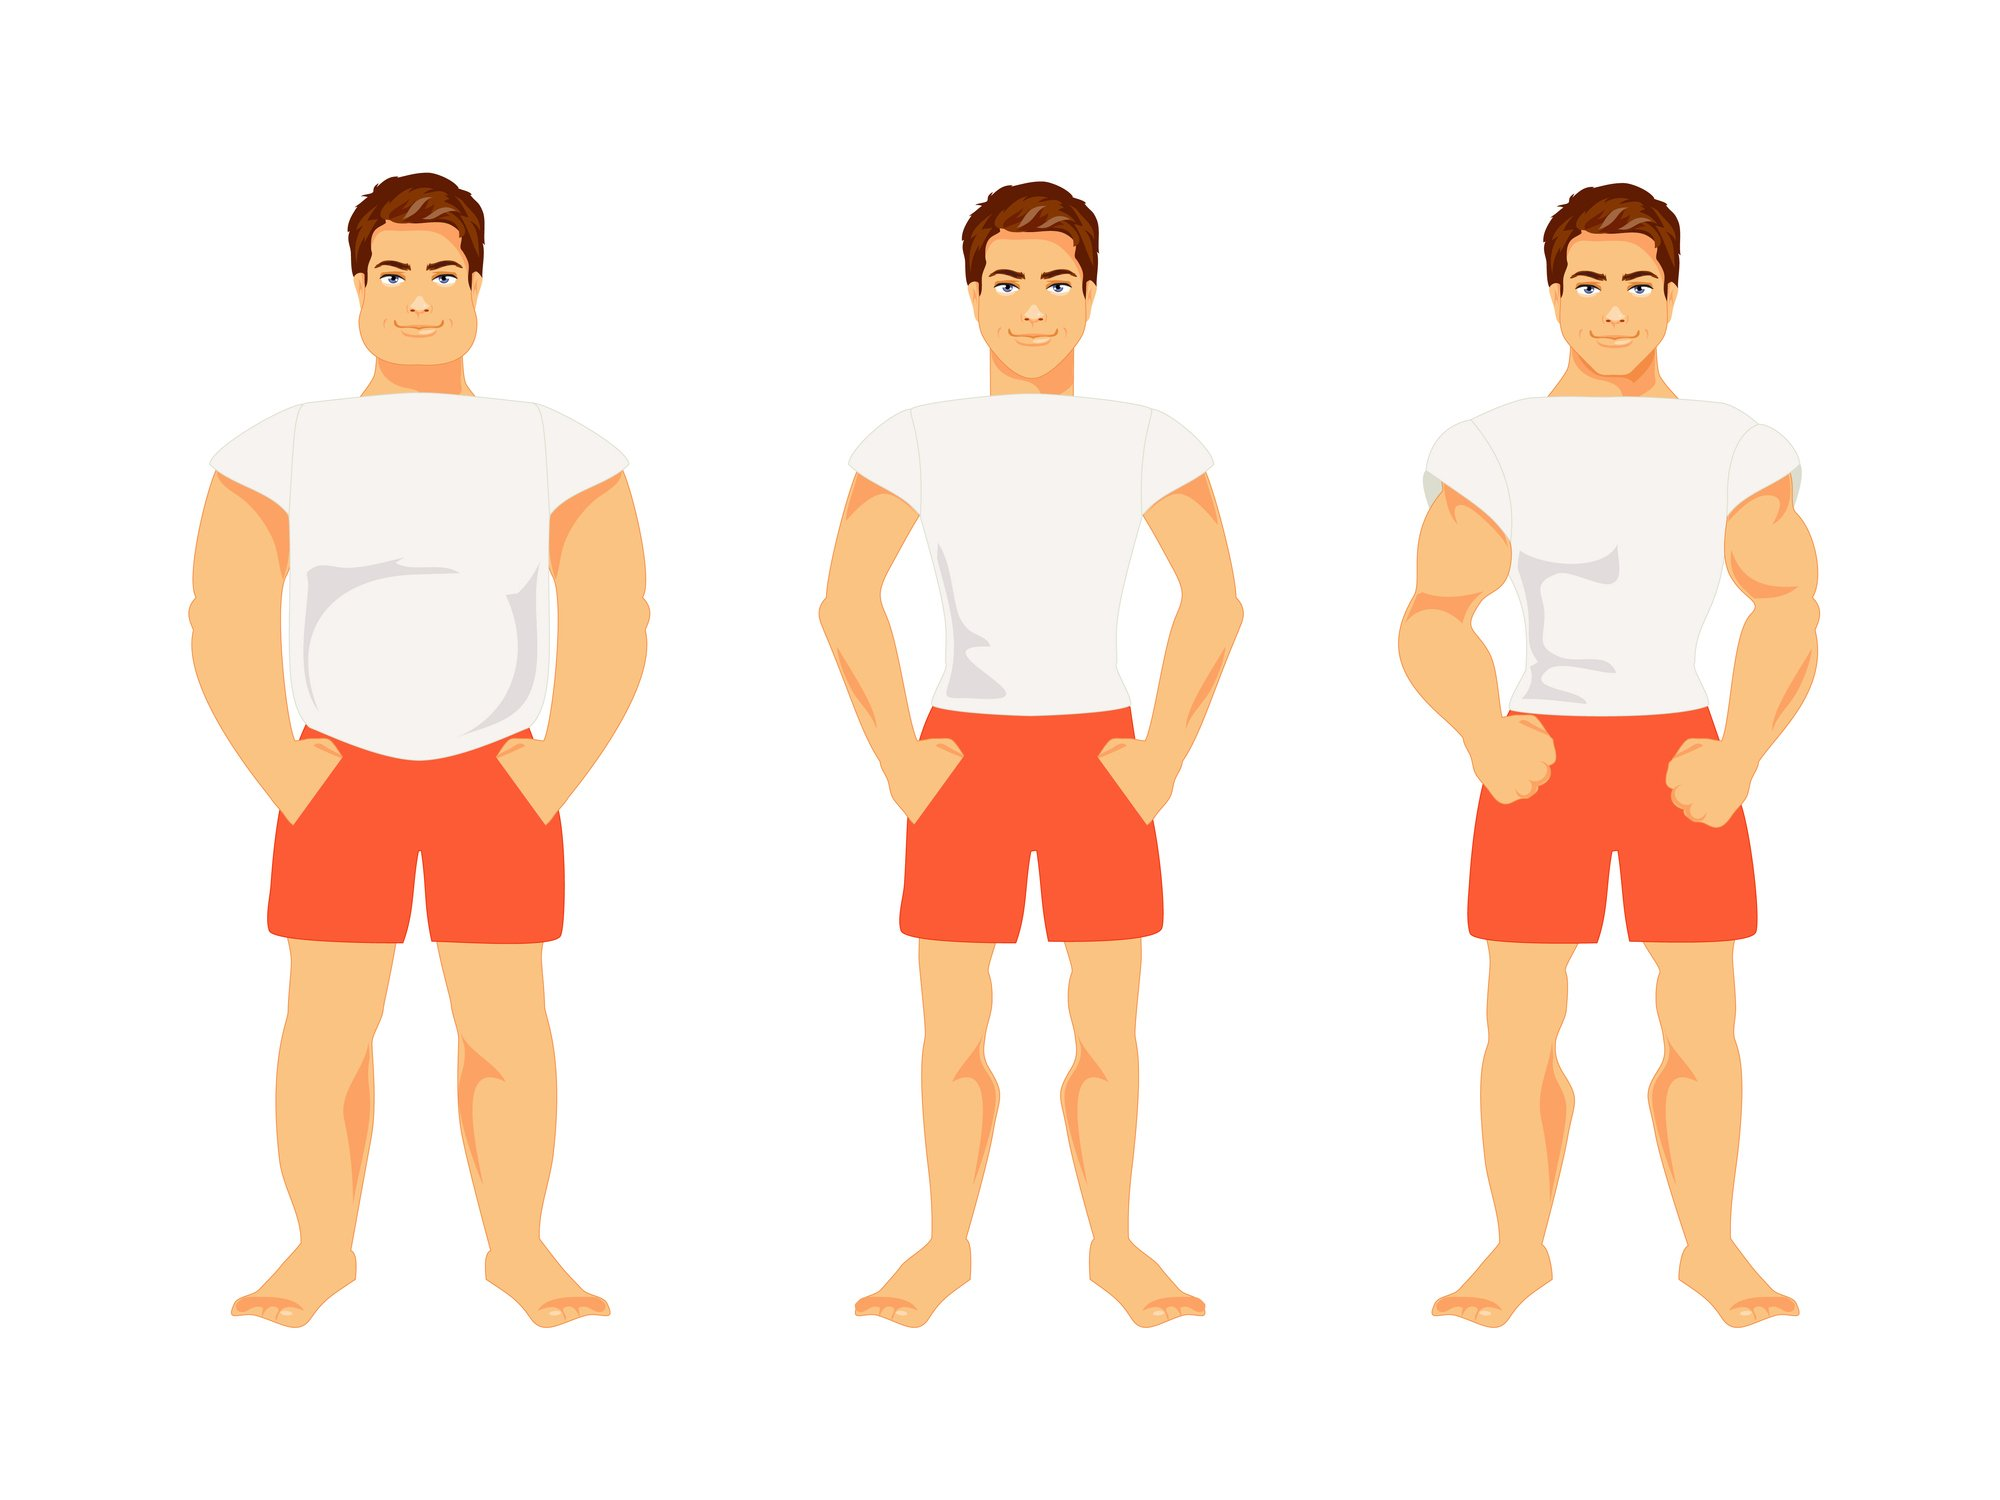 Endomorph, mesomorph, ectomorph body types